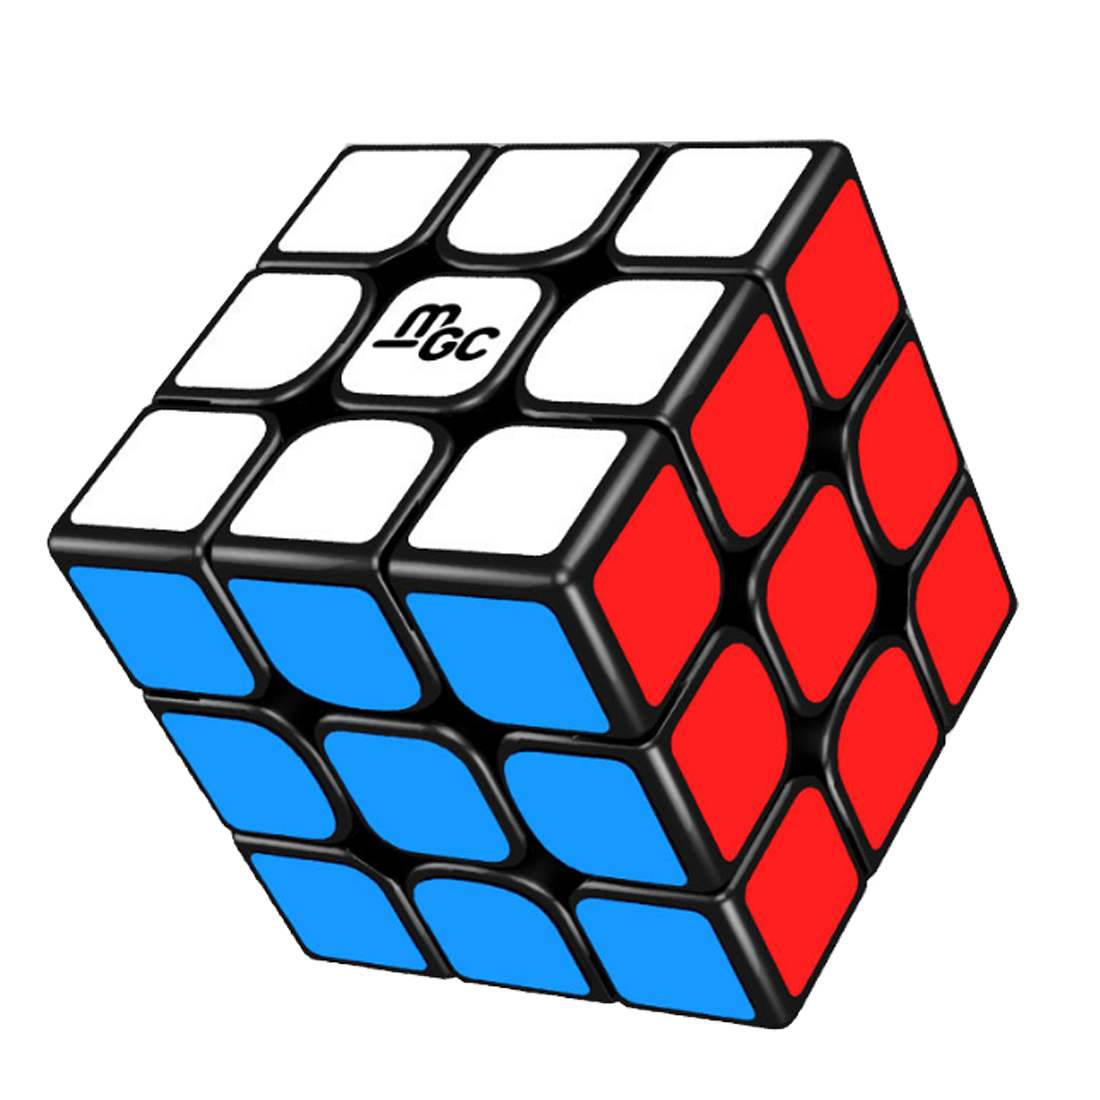 Surwish New YJ 3X3X3 Magnetic Version MGC Magic Cube Speed Cube for Brain Training - Black 8061 3x3x3 brain teaser magic iq cube multicolored 6 pcs